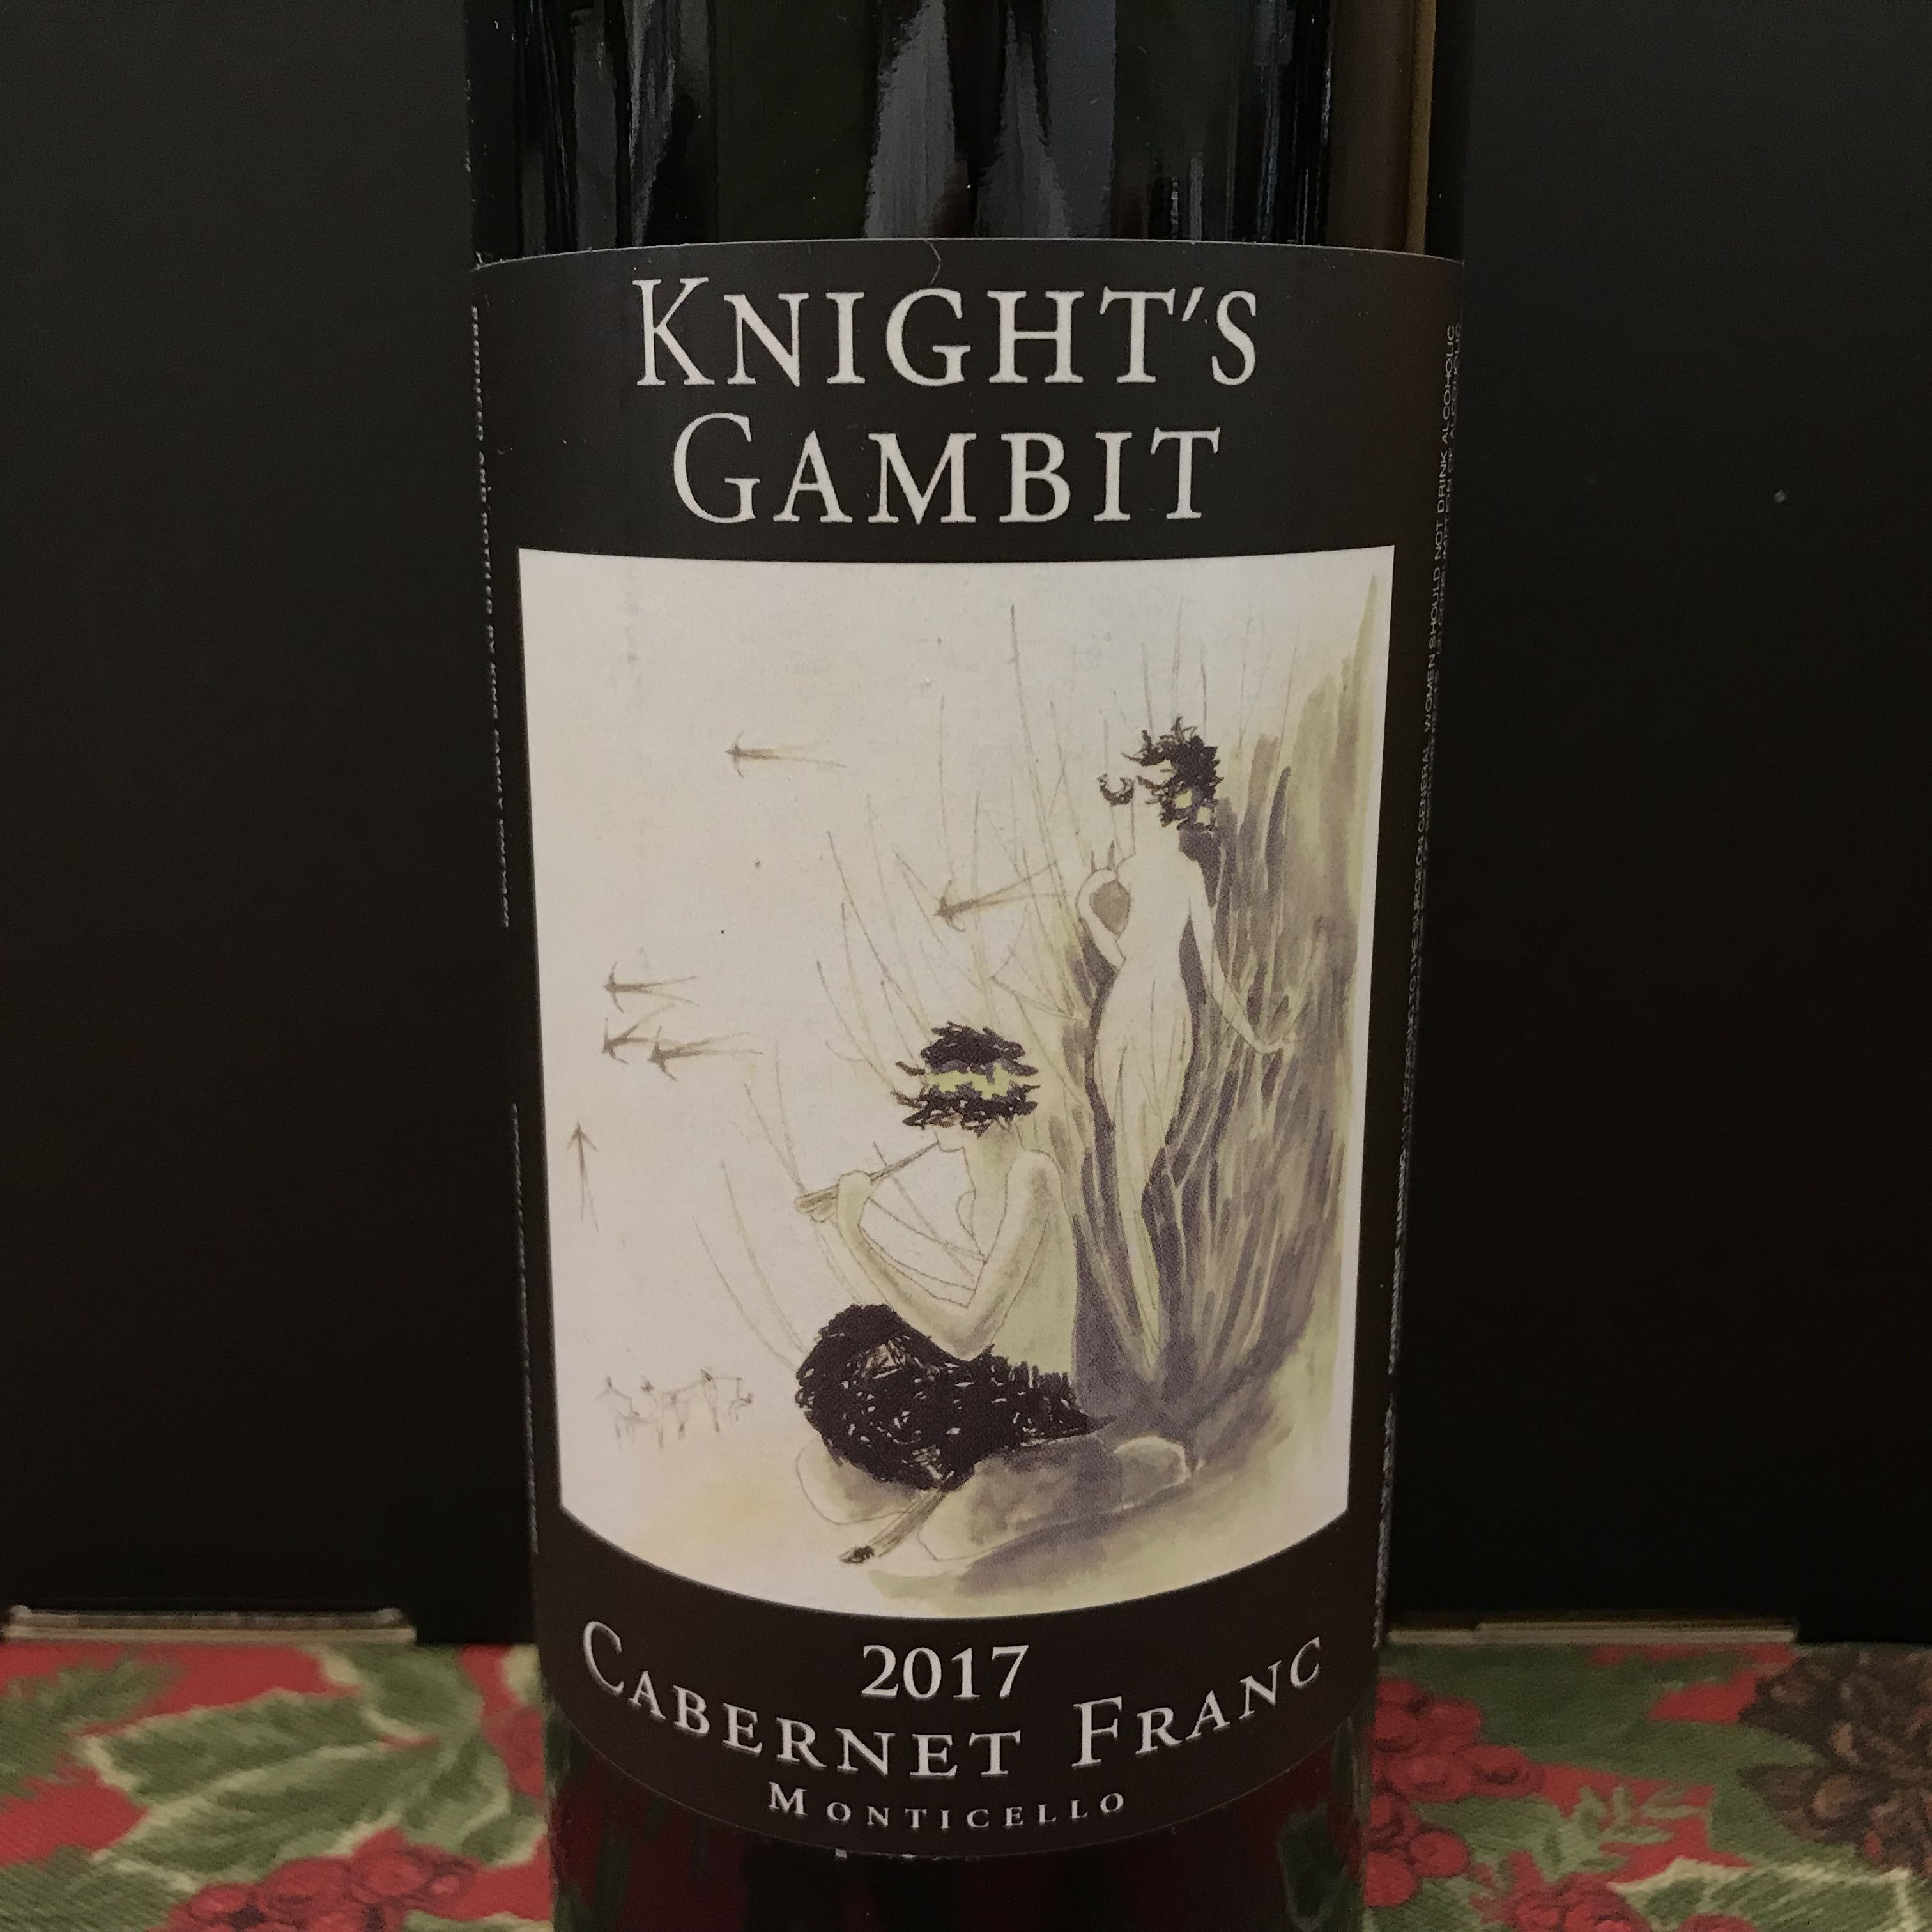 Knight's Gambit Cabernet Franc Monticello 2017